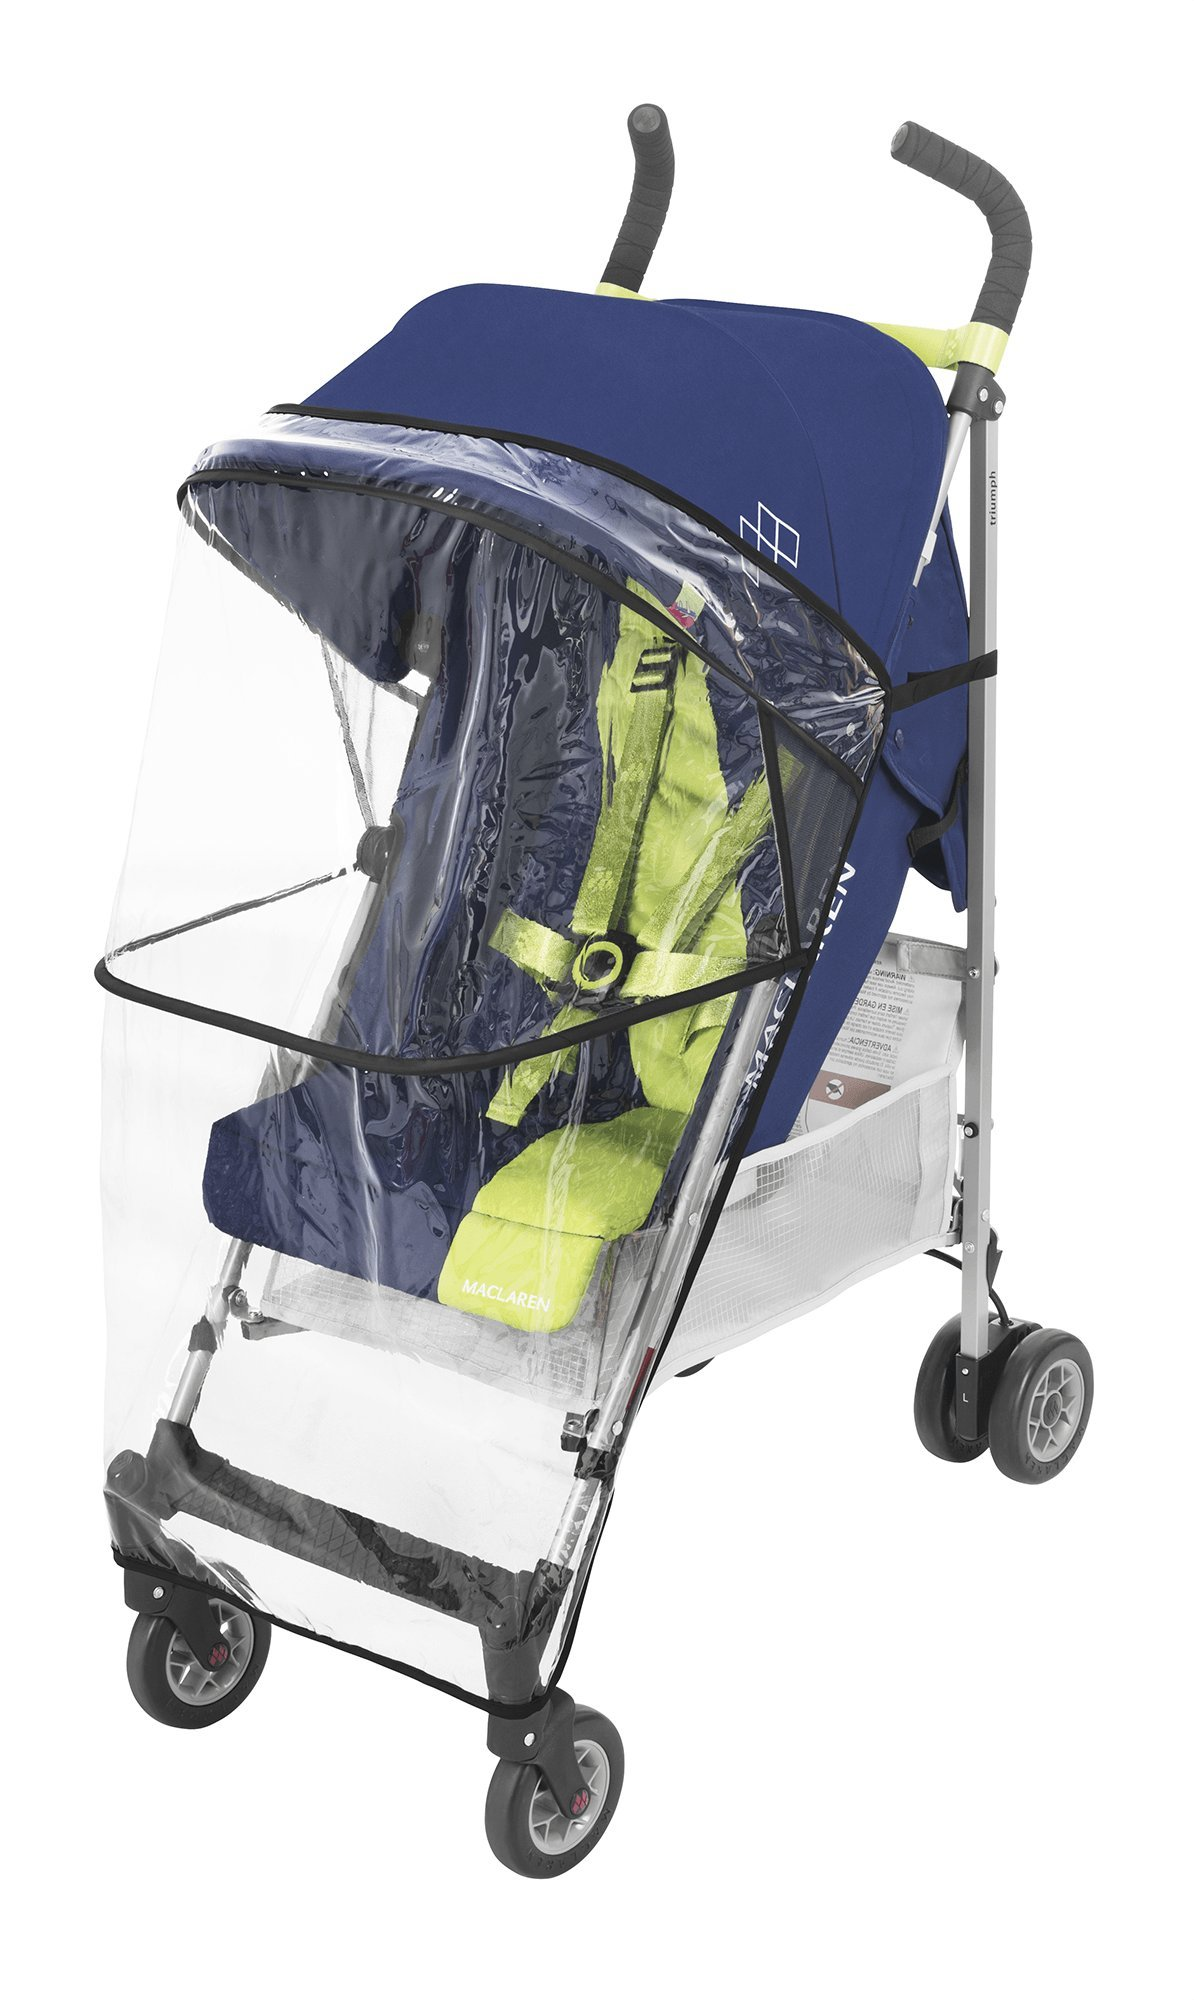 Maclaren Triumph Stroller - lightweight, compact Maclaren Basic weight of 5kg/ 11lb; ideal for children 6 months and up to 25kg/55lb Maclaren is the only brand to offer a sovereign lifetime warranty Extendable upf 50+ sun canopy and built-in sun visor 8